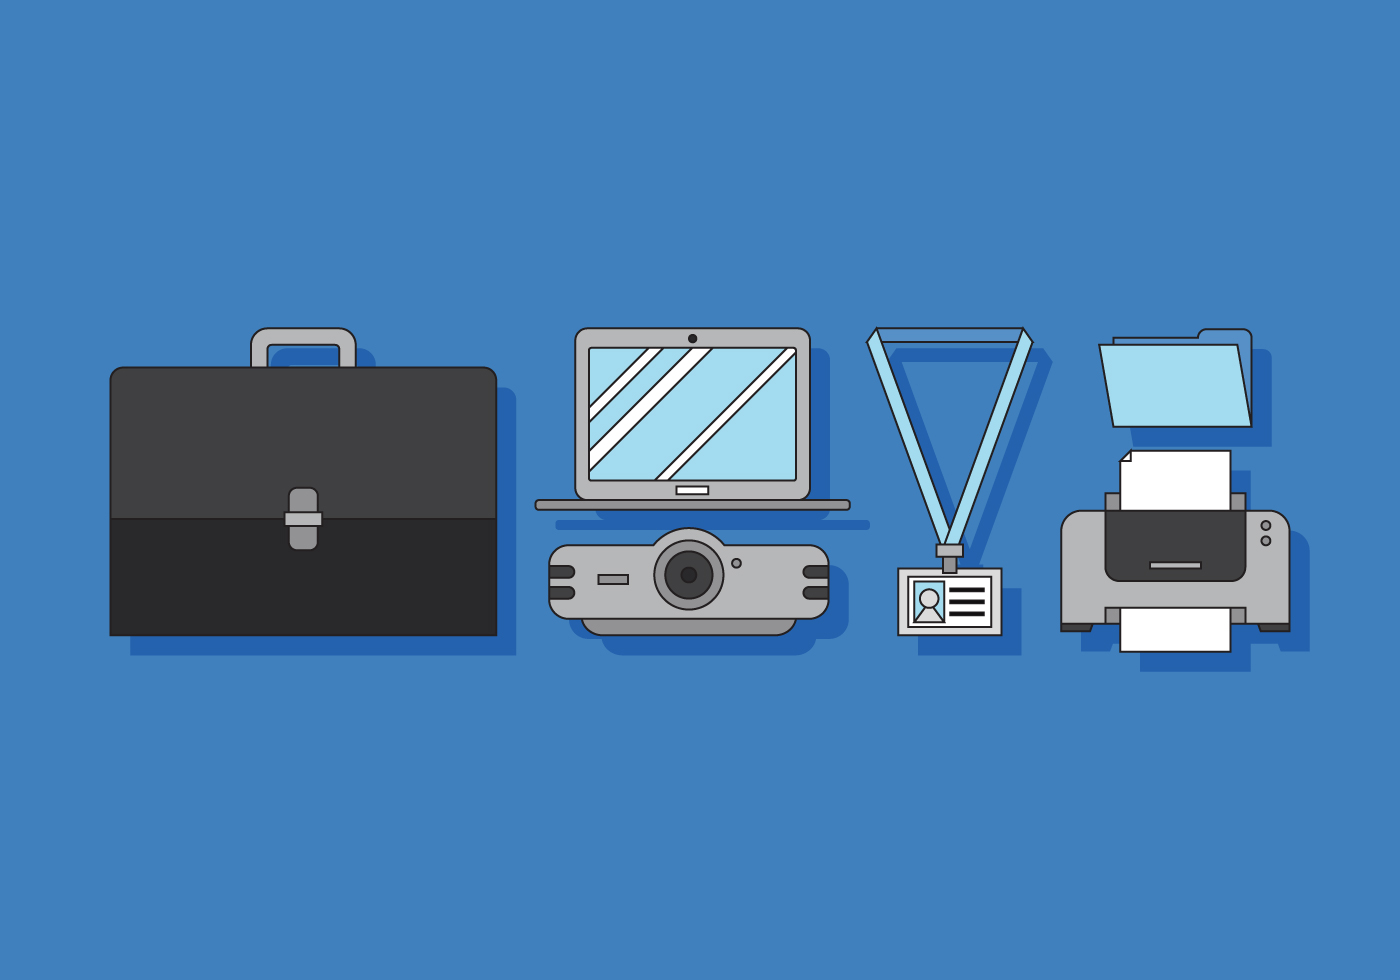 Vector Office and Business Elements - Download Free Vector Art, Stock